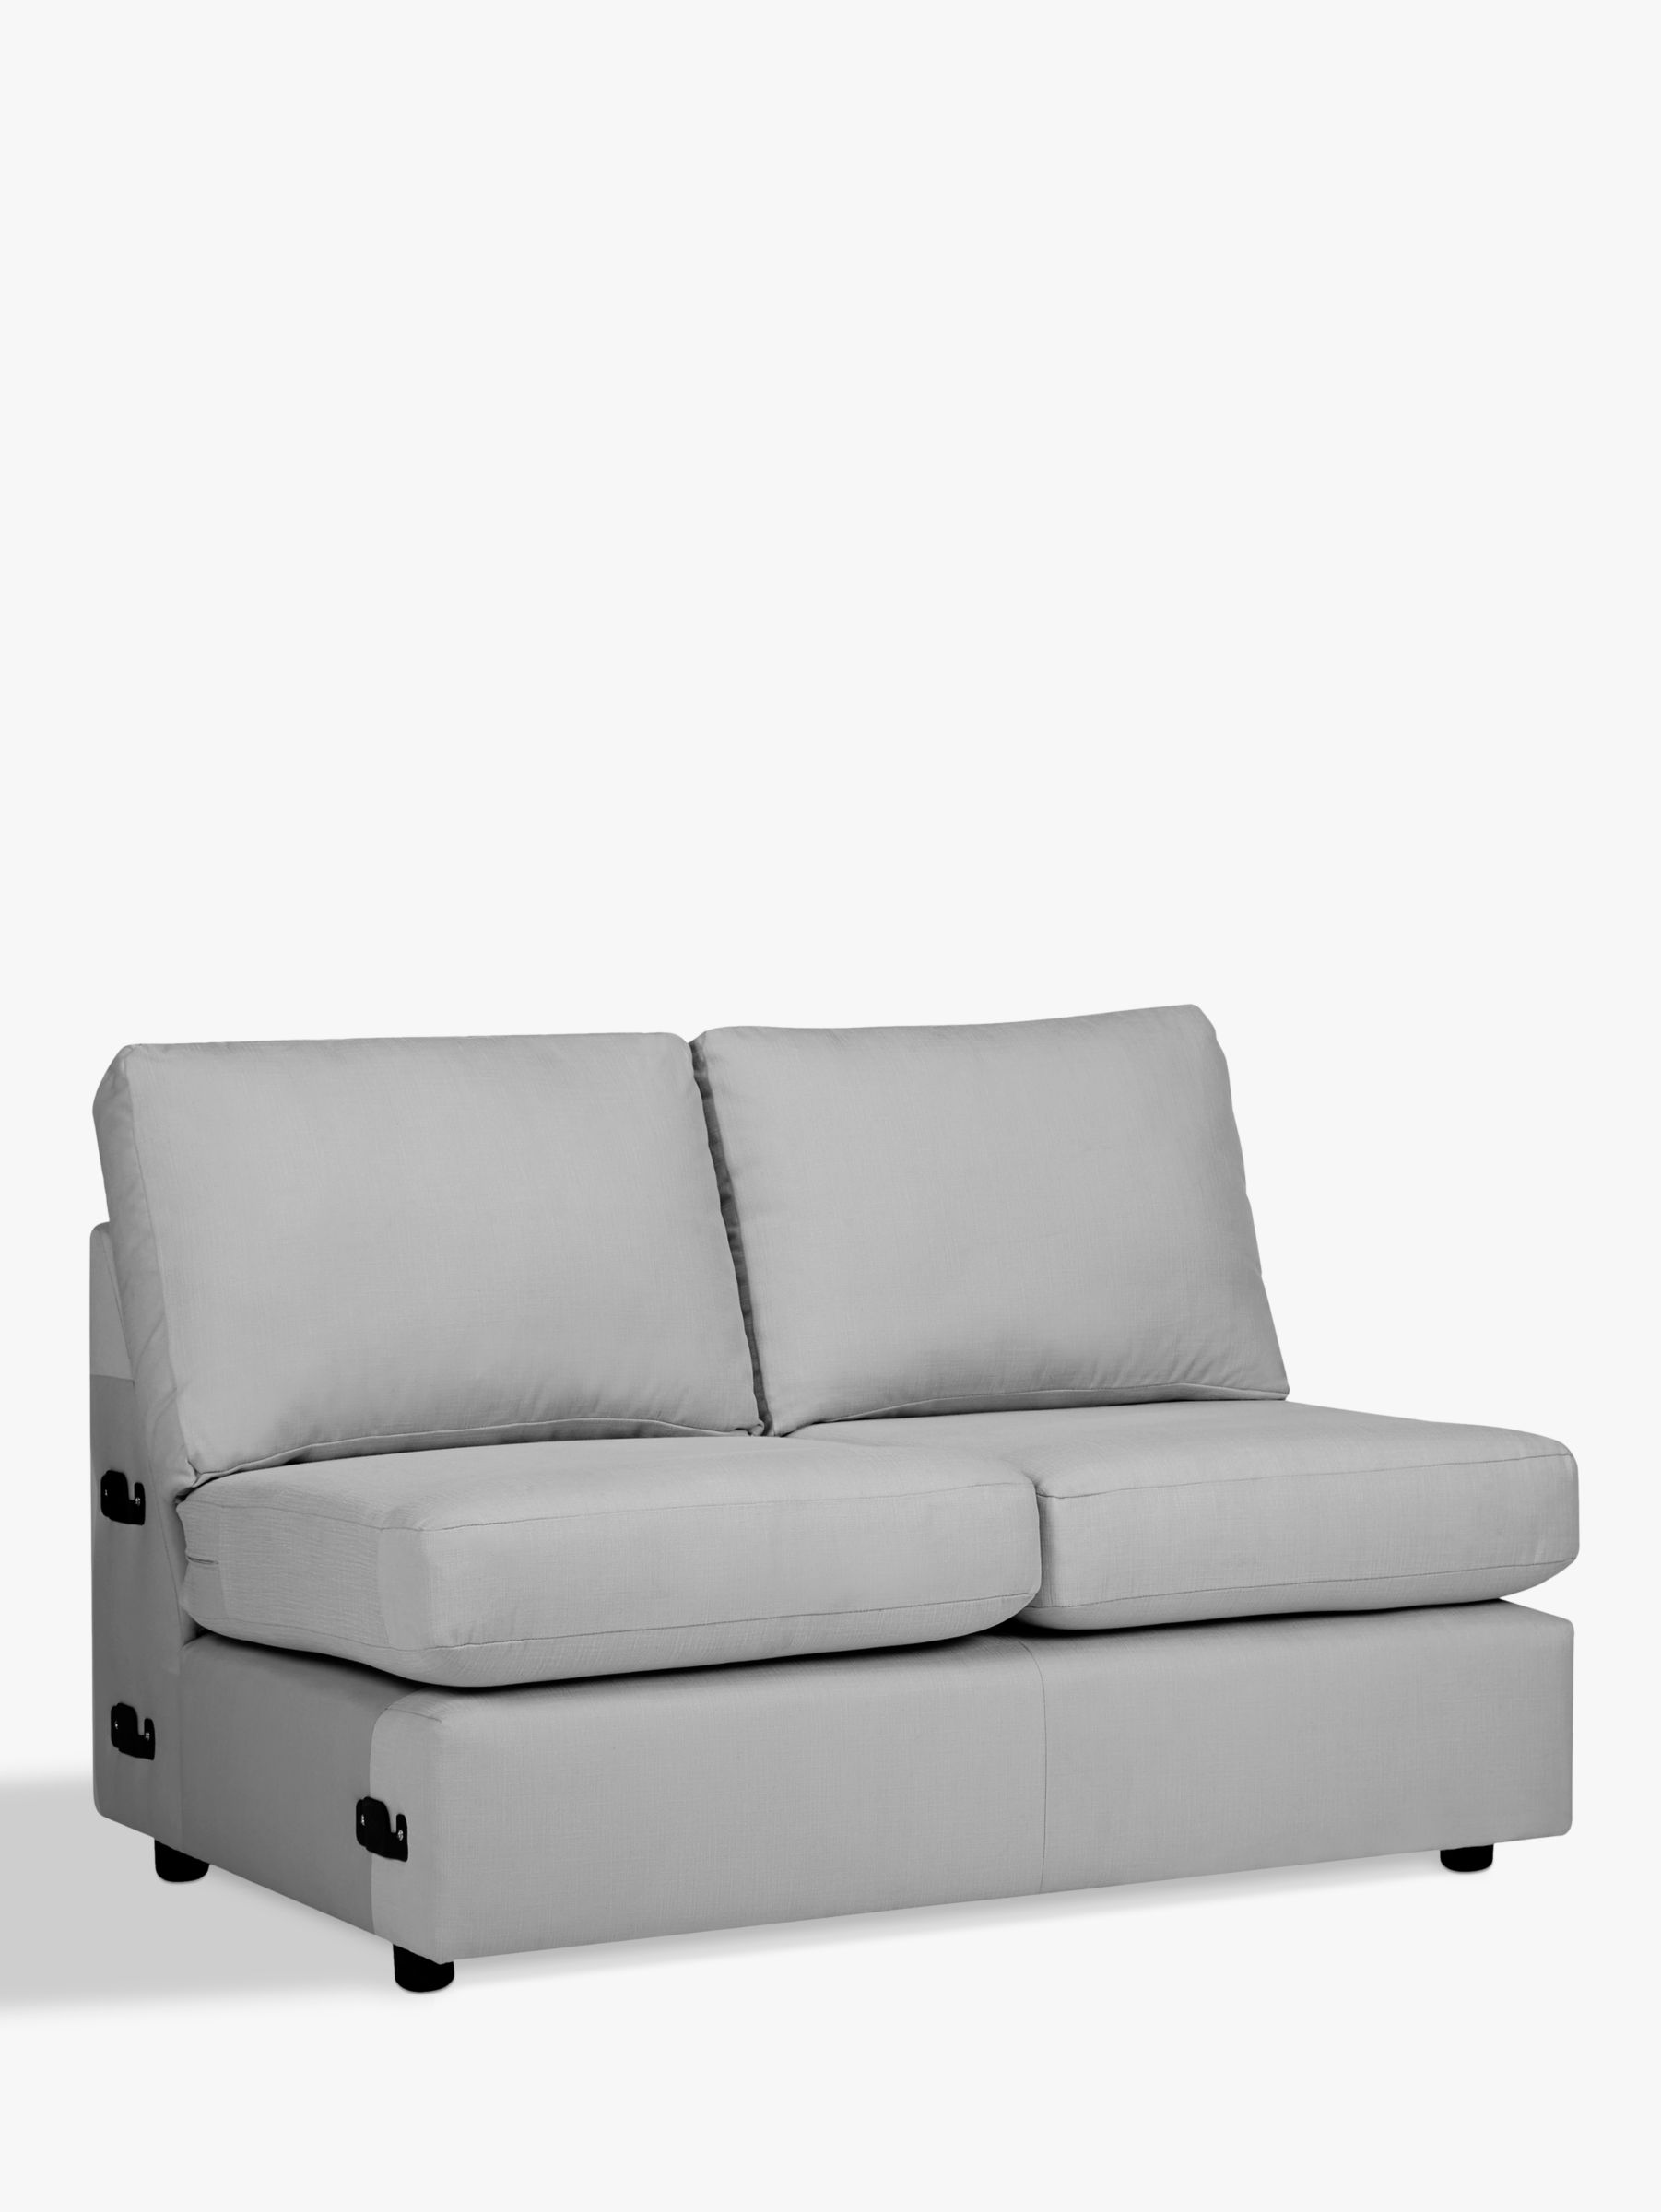 armless sofas rooms to go sleeper sofa sets house by john lewis oliver modular small 2 seater unit buyhouse online at johnlewis